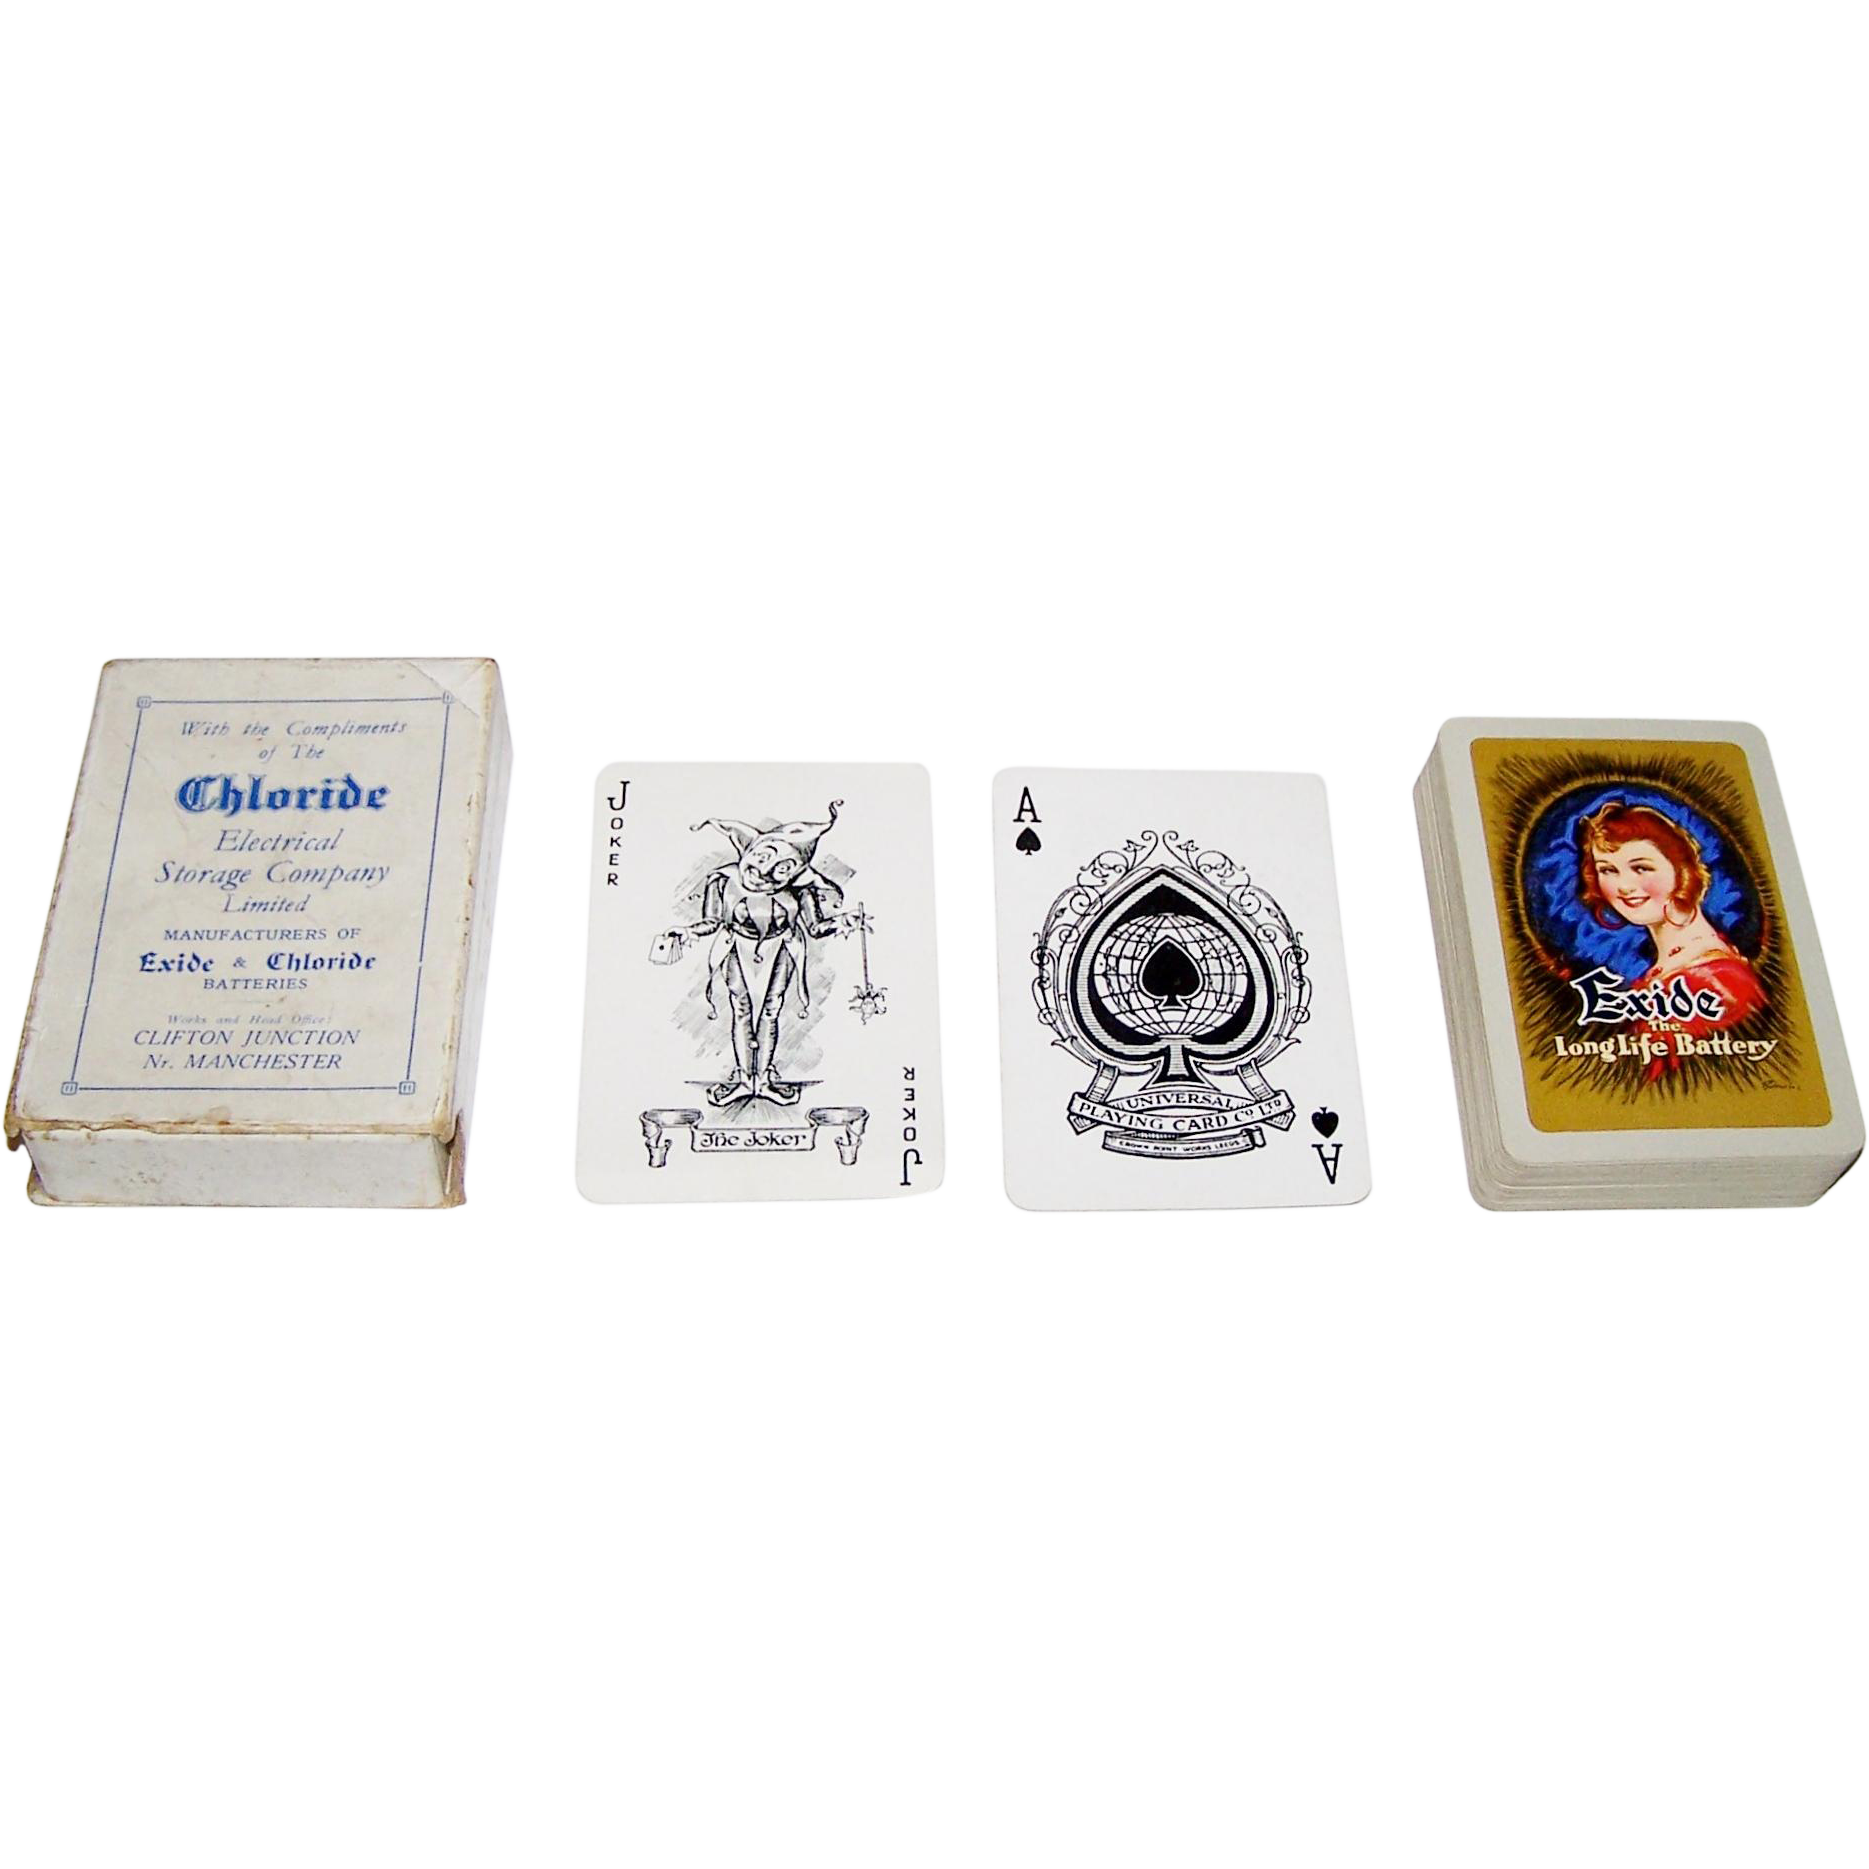 "Universal ""Exide Long Life Battery"" Playing Cards, Chloride Electrical Storage Company Ltd., William Barribal Designs, c.1937"